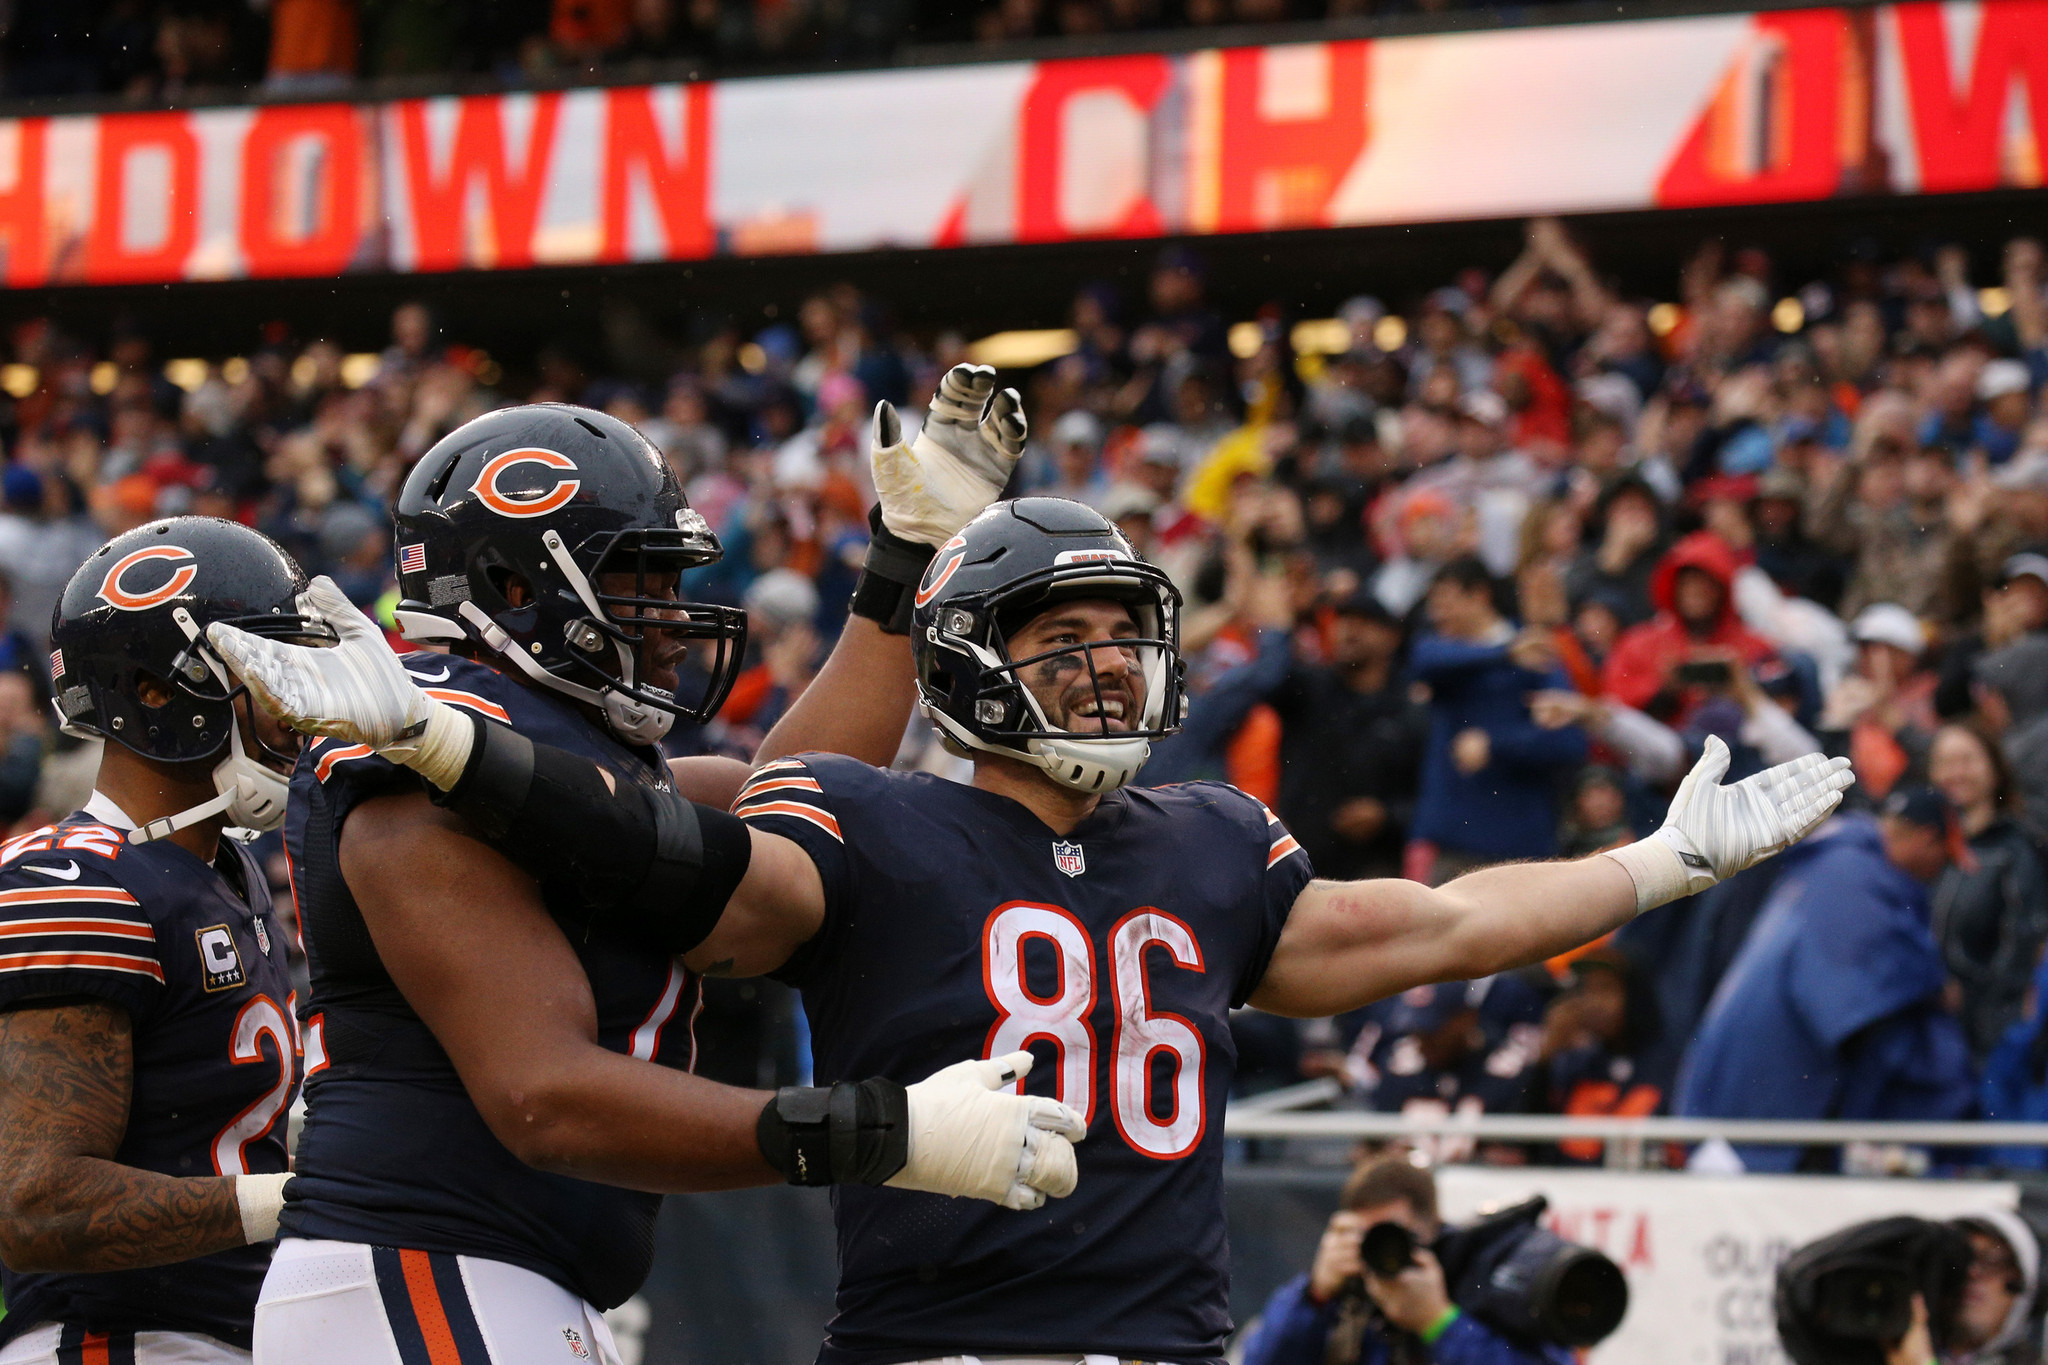 Ct-zach-miller-bears-new-contract-20160202